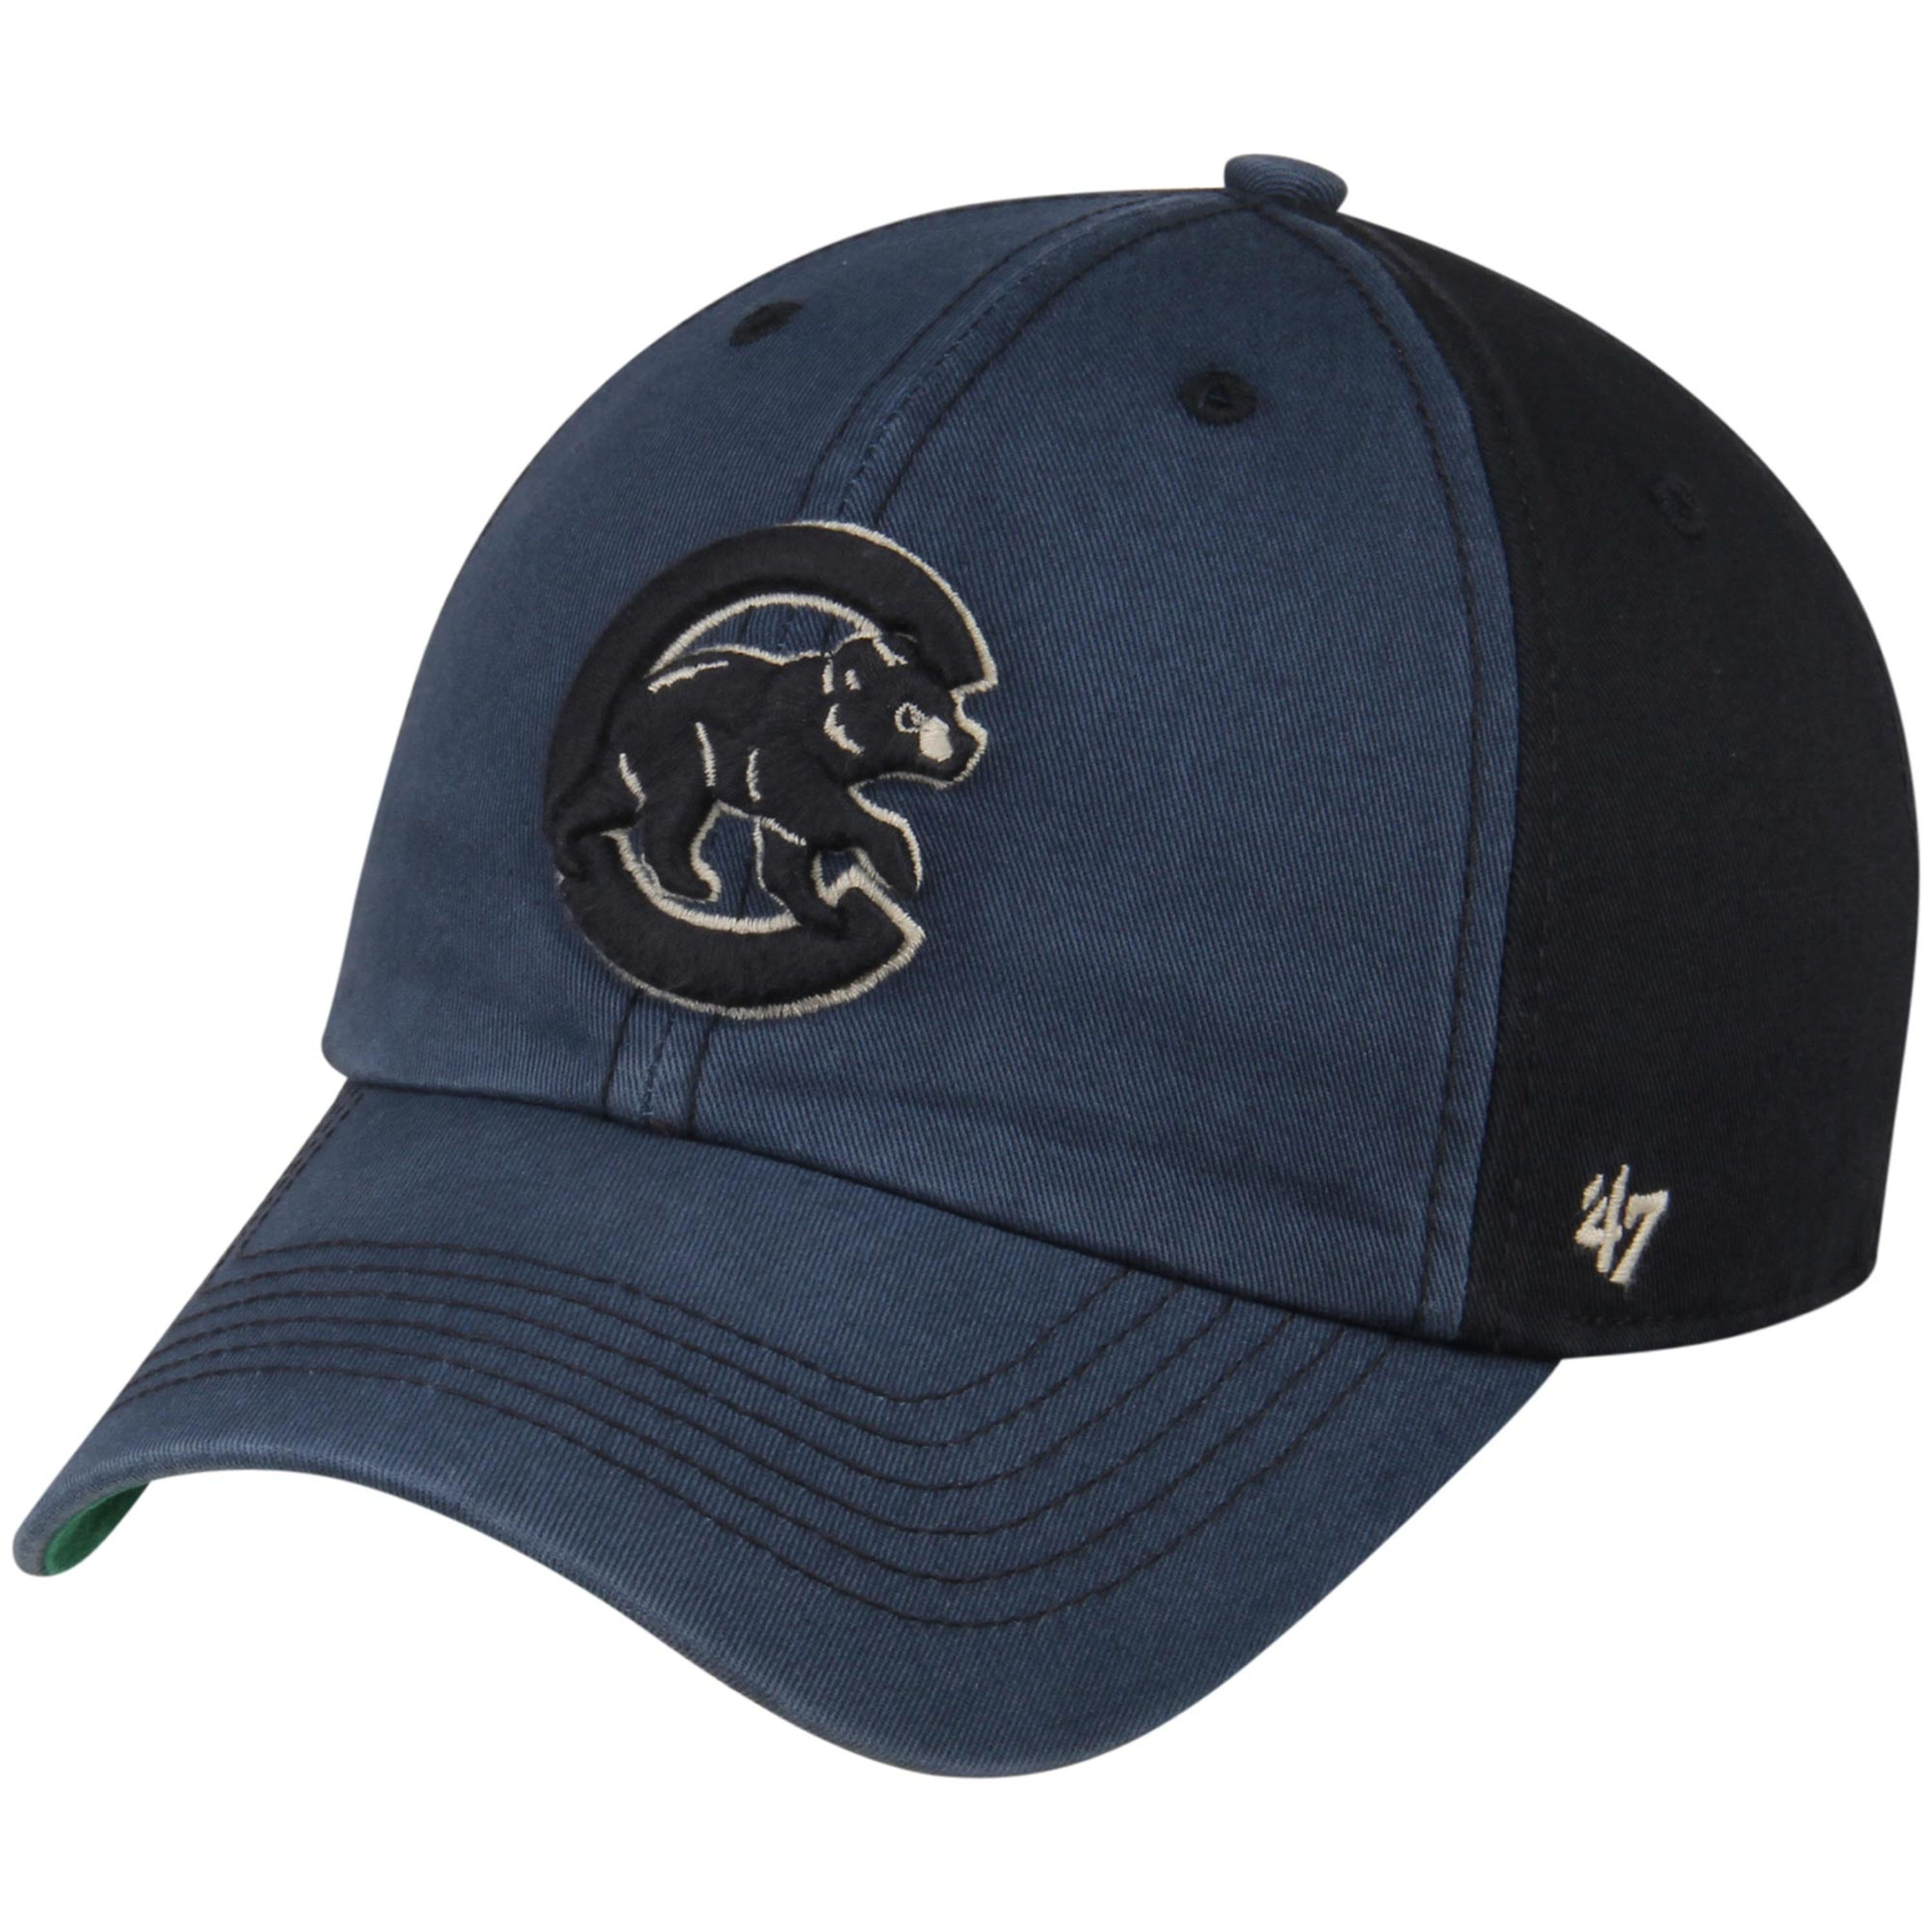 Chicago Cubs  47 Humboldt Franchise Fitted Hat - Navy Black  c00b063630ad